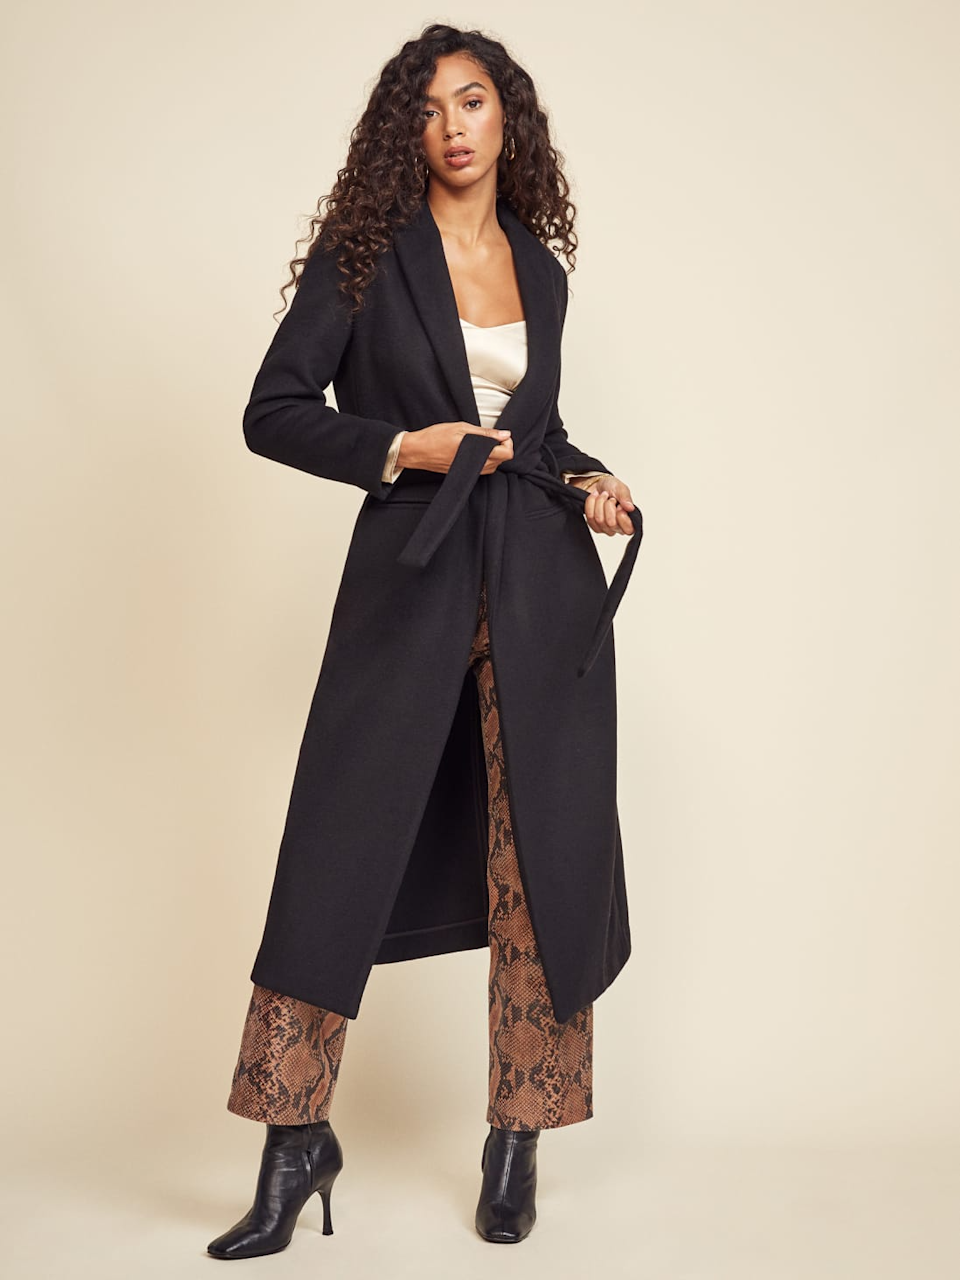 "<br><br><strong>Reformation</strong> Greenwich Coat, $, available at <a href=""https://go.skimresources.com/?id=30283X879131&url=https%3A%2F%2Fwww.thereformation.com%2Fproducts%2Fgreenwich-coat"" rel=""nofollow noopener"" target=""_blank"" data-ylk=""slk:Reformation"" class=""link rapid-noclick-resp"">Reformation</a>"